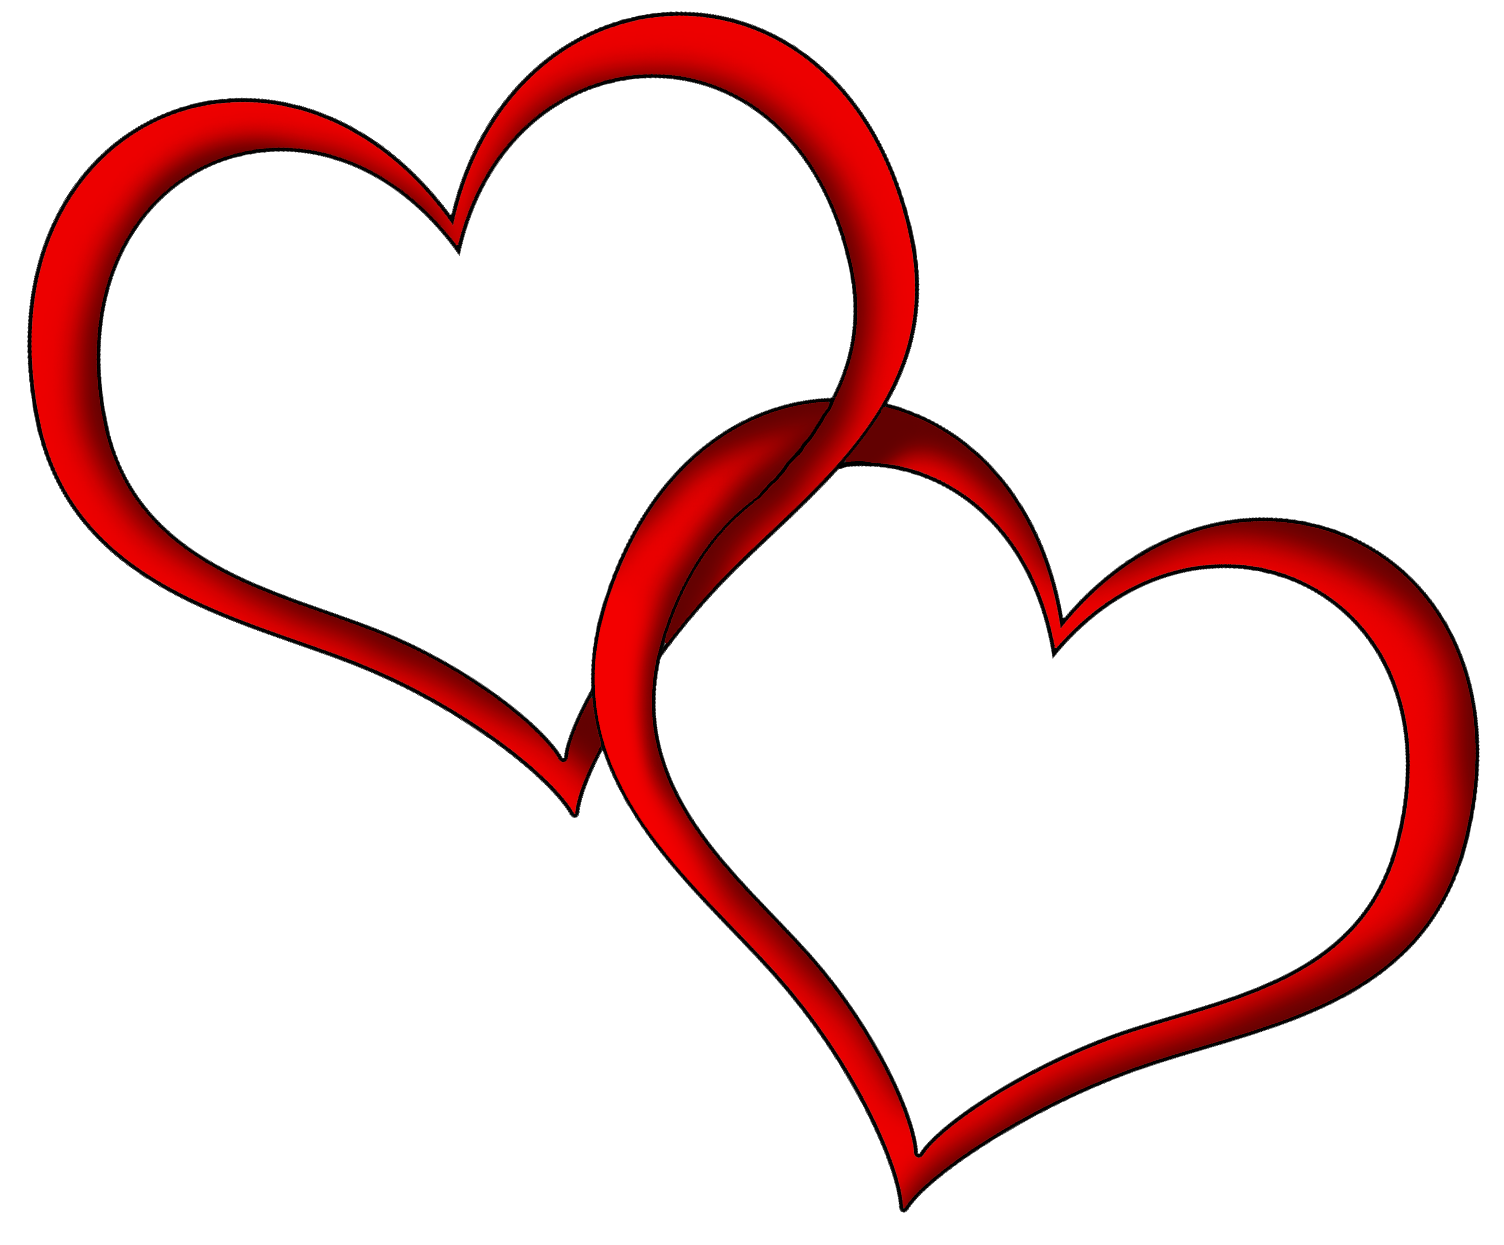 Heart clipart png. Hearts